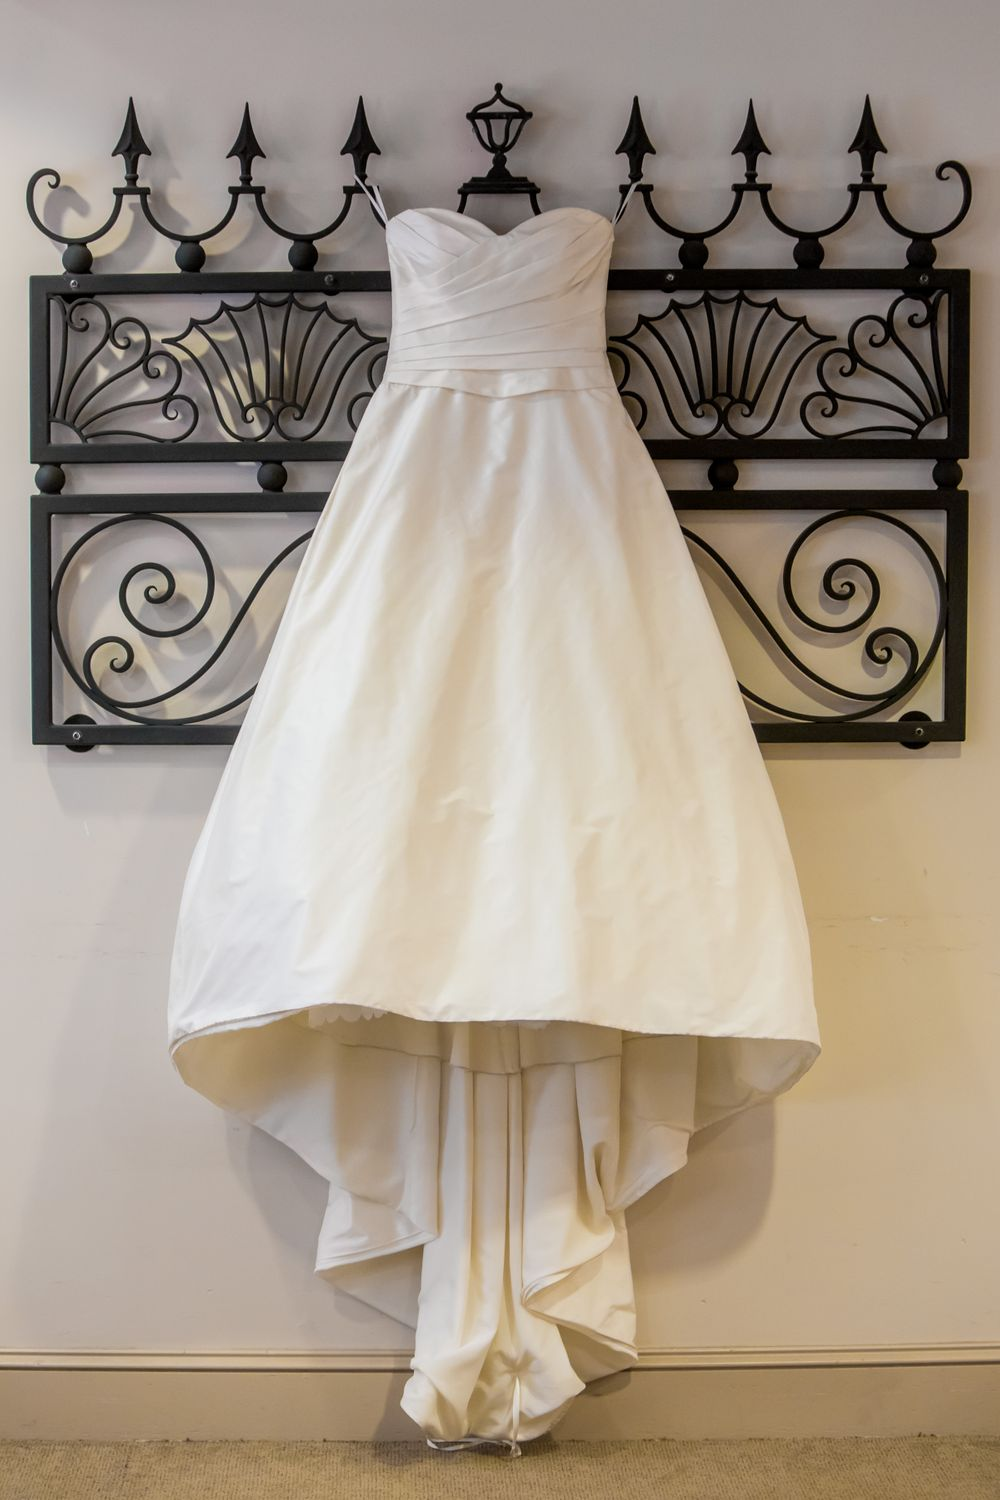 Ashley's bridal gown hangs before a wedding at St. Philips Church in Charleston, SC